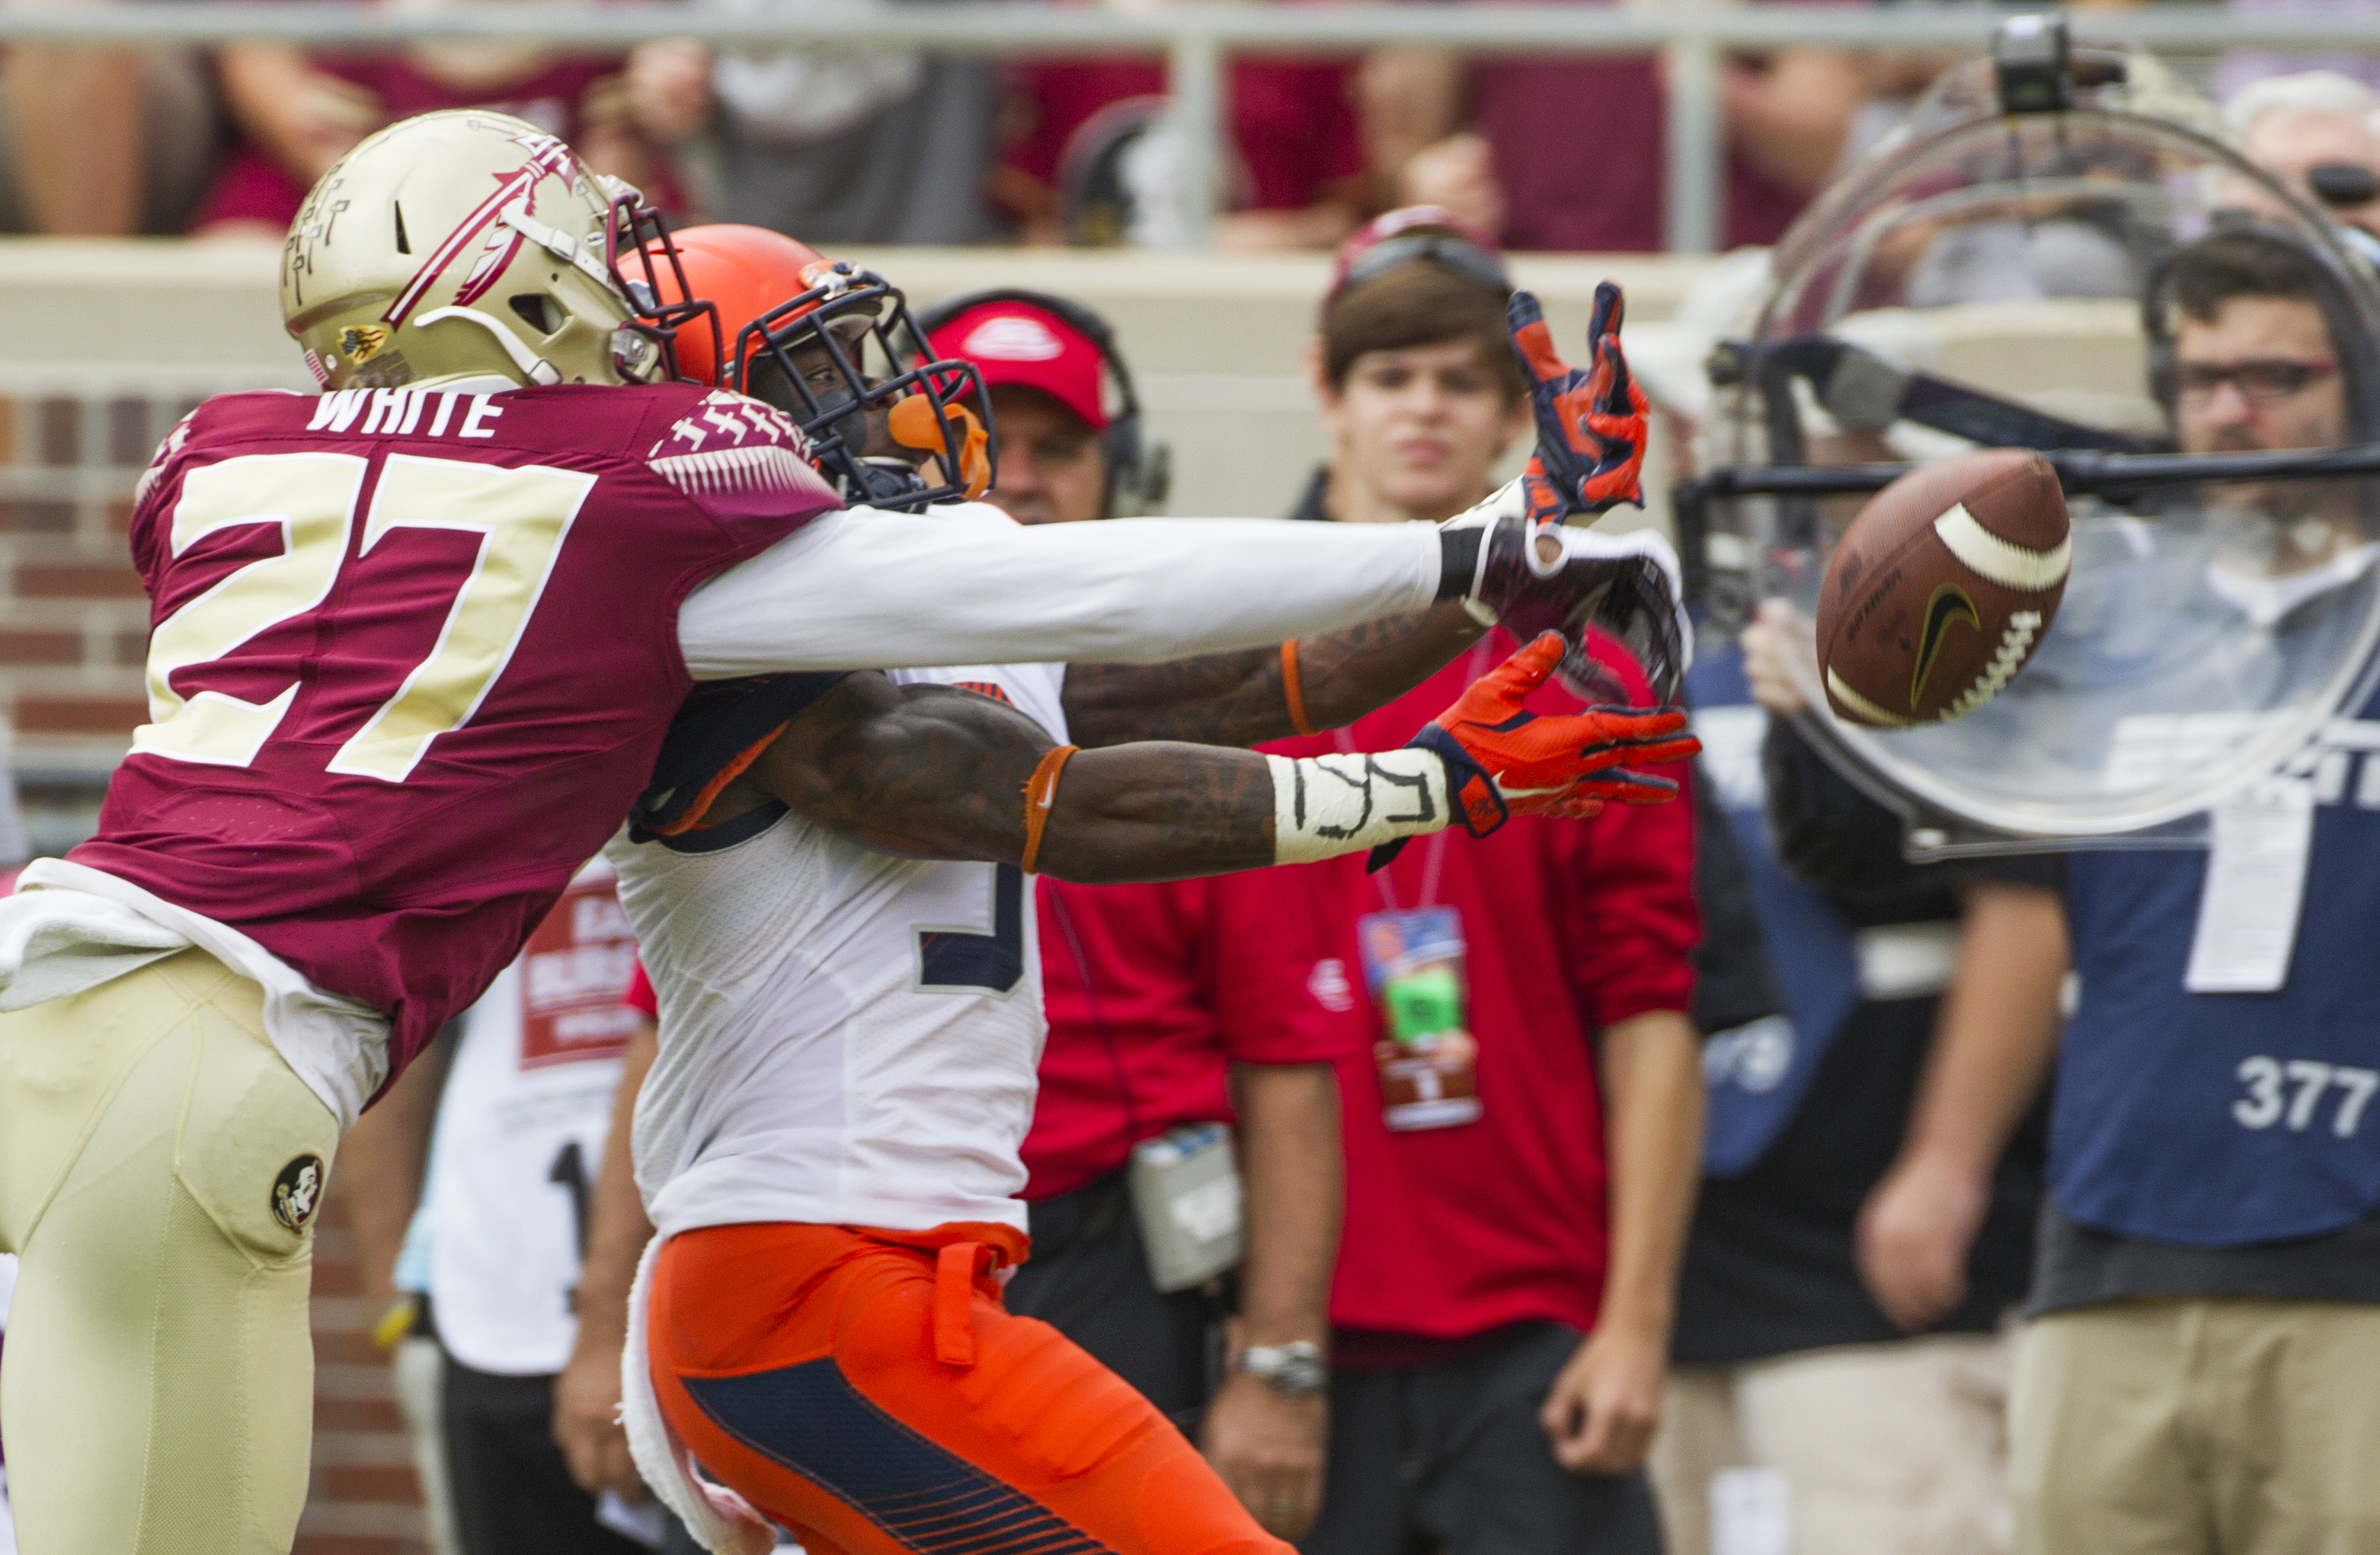 FILE - In this Oct. 31, 2015, file photo, Florida State defensive back Marquez White deflects a pass intended for Syracuse Brisly Estime in the first half of an NCAA college football game in Tallahassee, Fla. White has been in the shadows of Jalen Ramsey